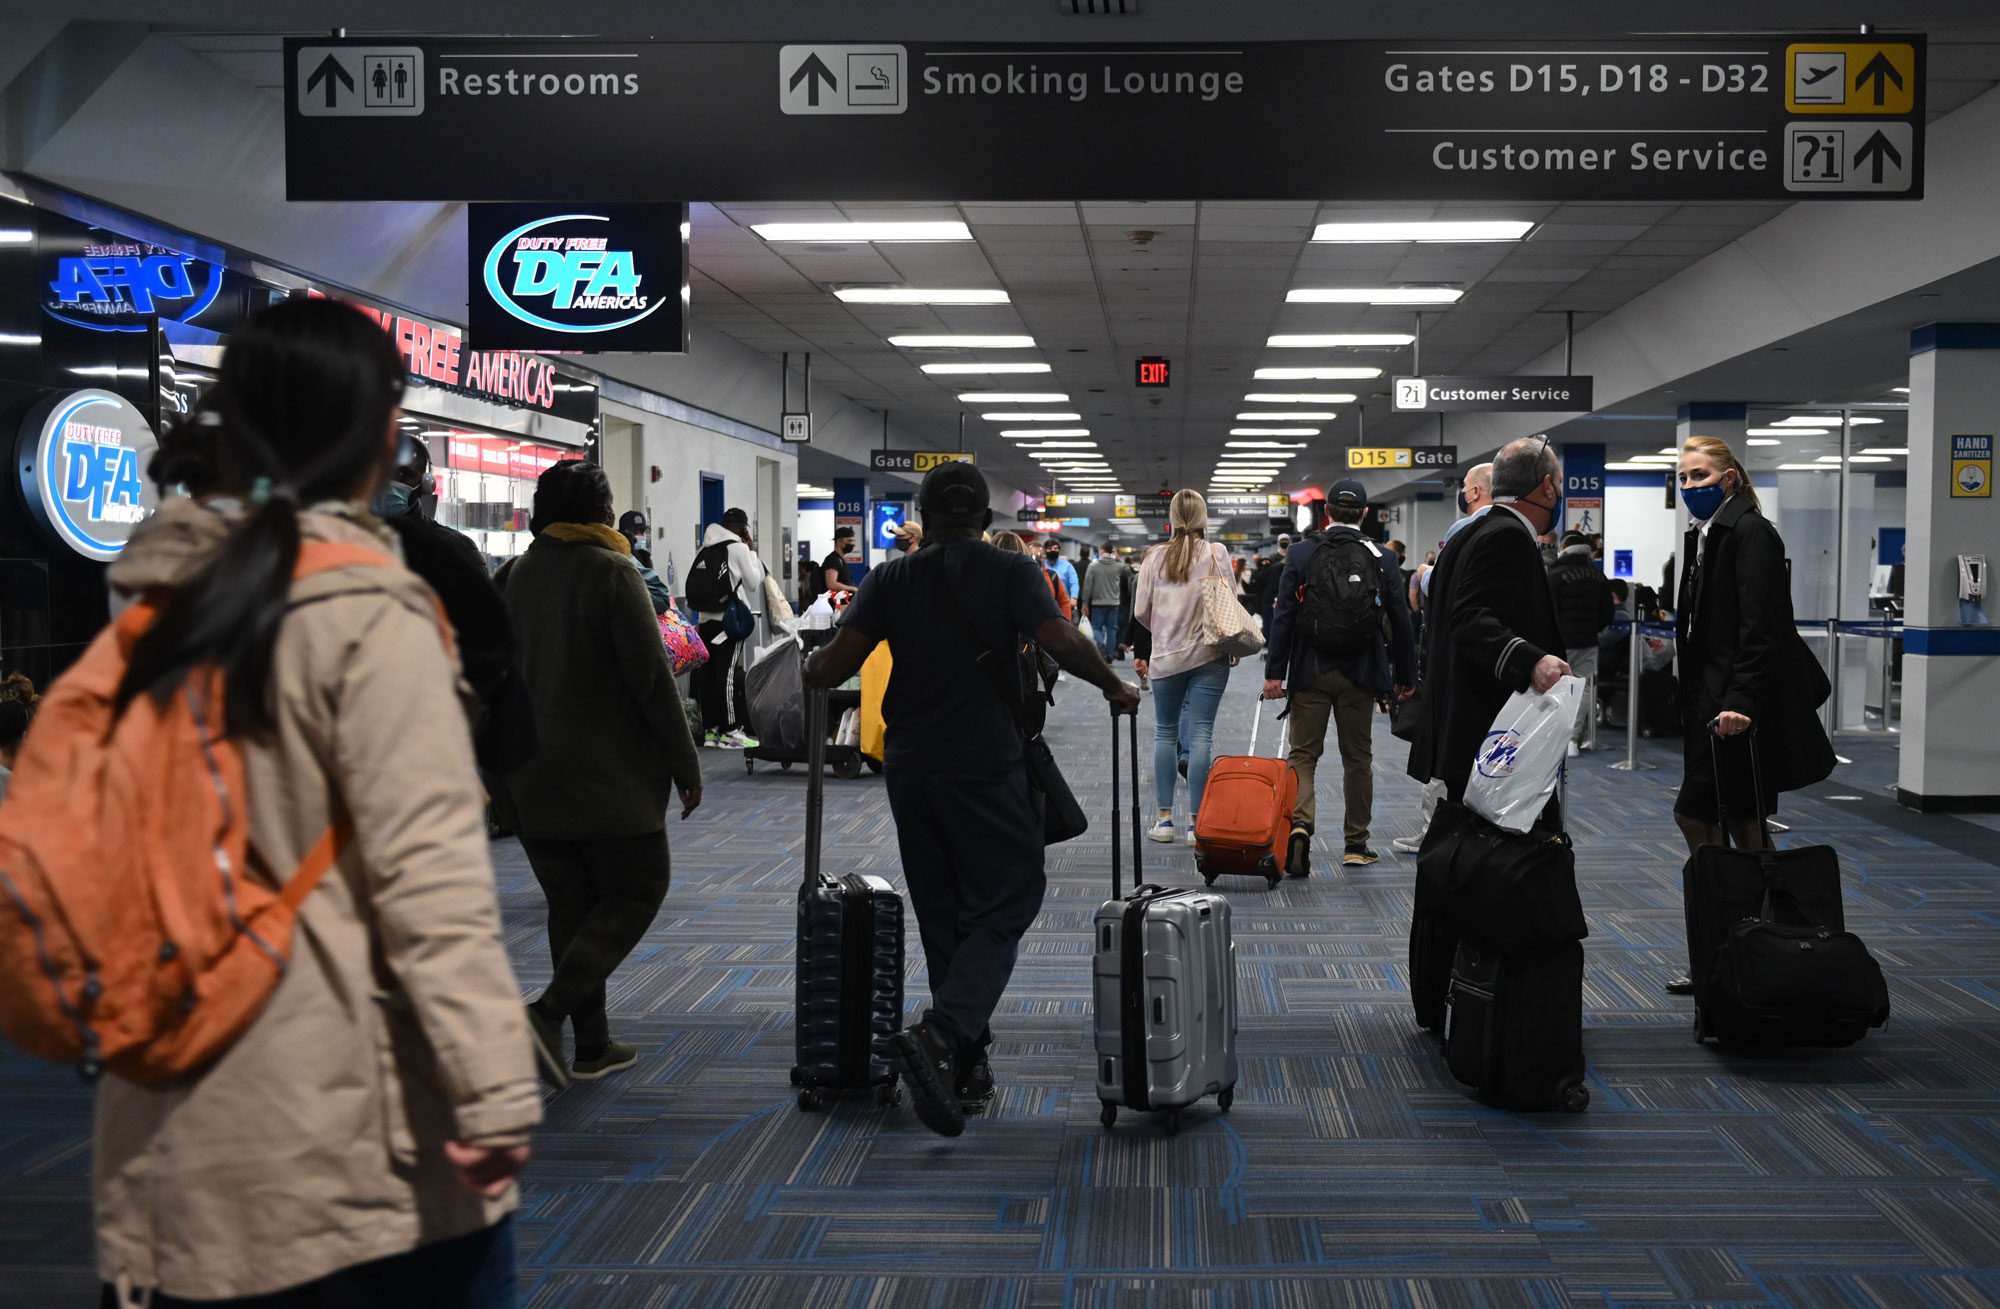 Passengers walk through a terminal at Dulles International airport in Dulles, Virginia on December 27, 2020.